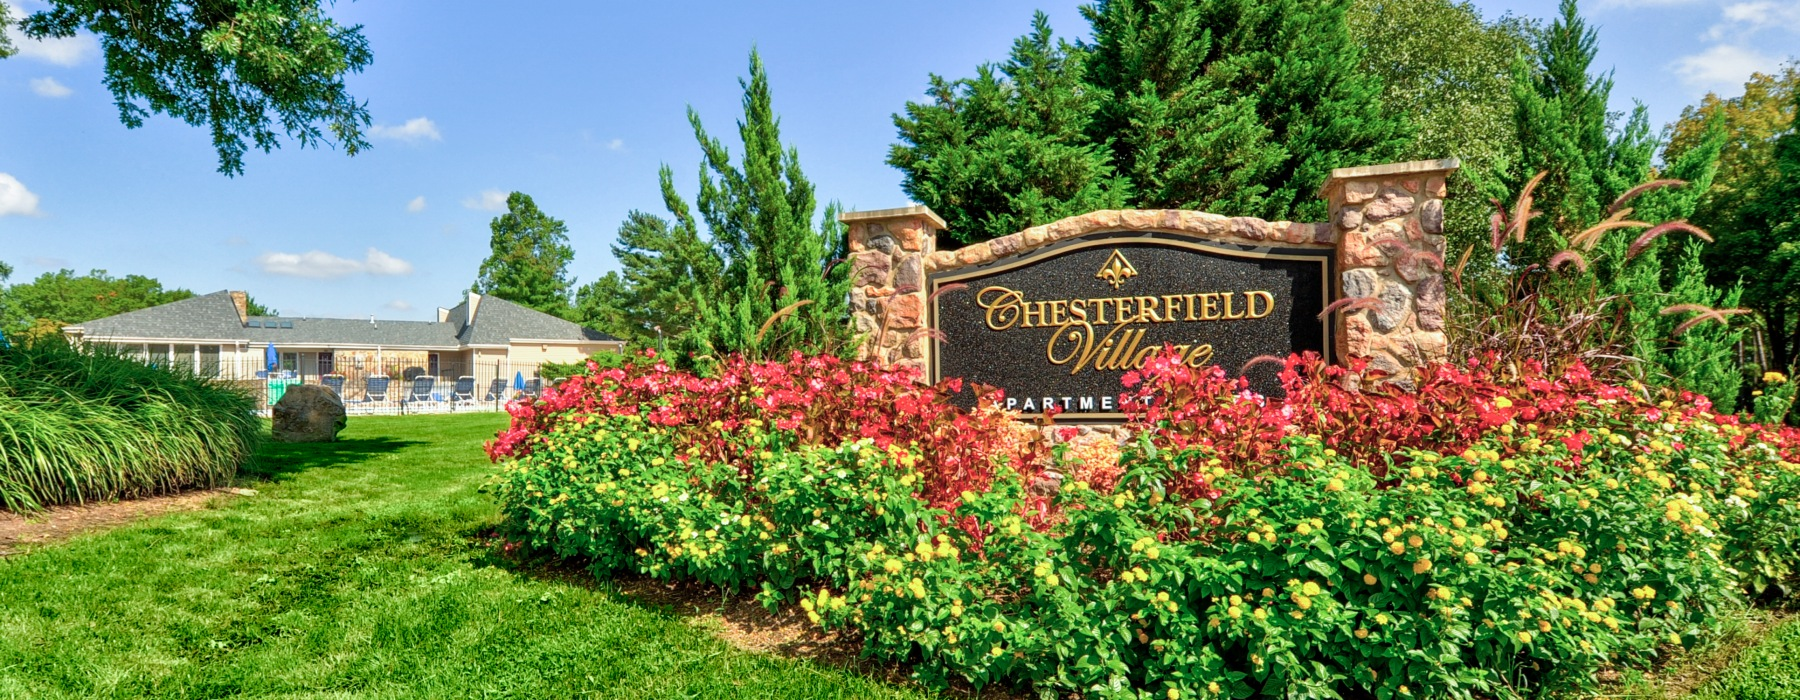 Chesterfield Village Entrance Sign